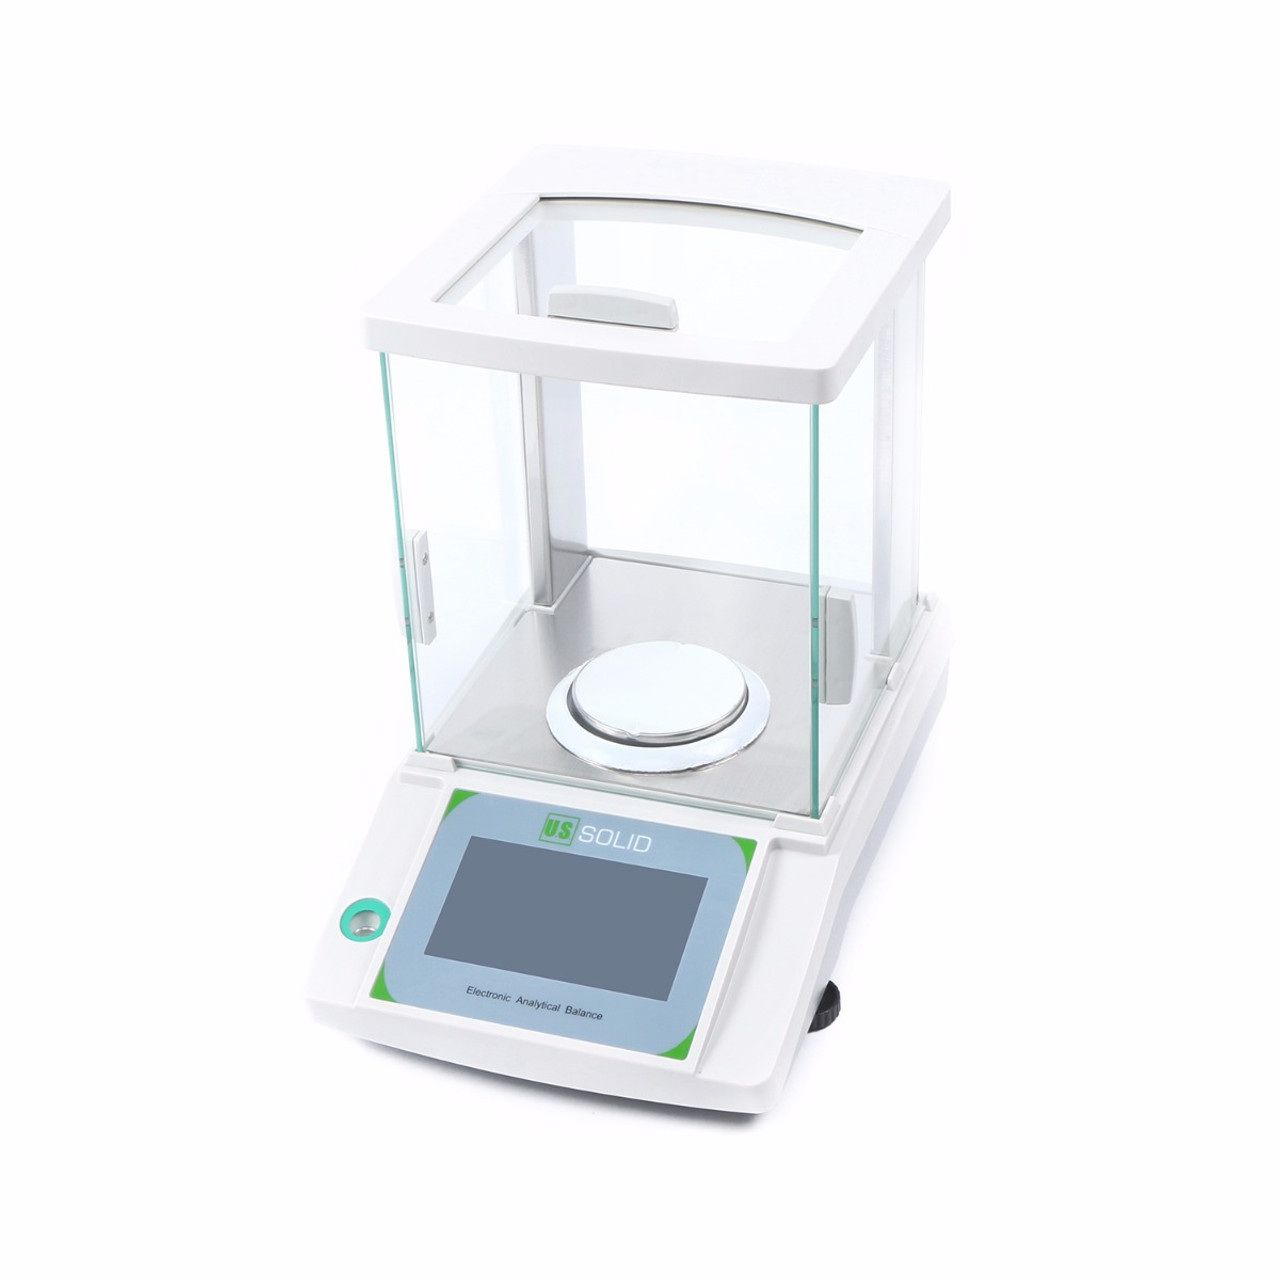 220 g 0.1mg Analytical Balance, 0.0001g Lab Balance Digital Precision Scale Touch Screen